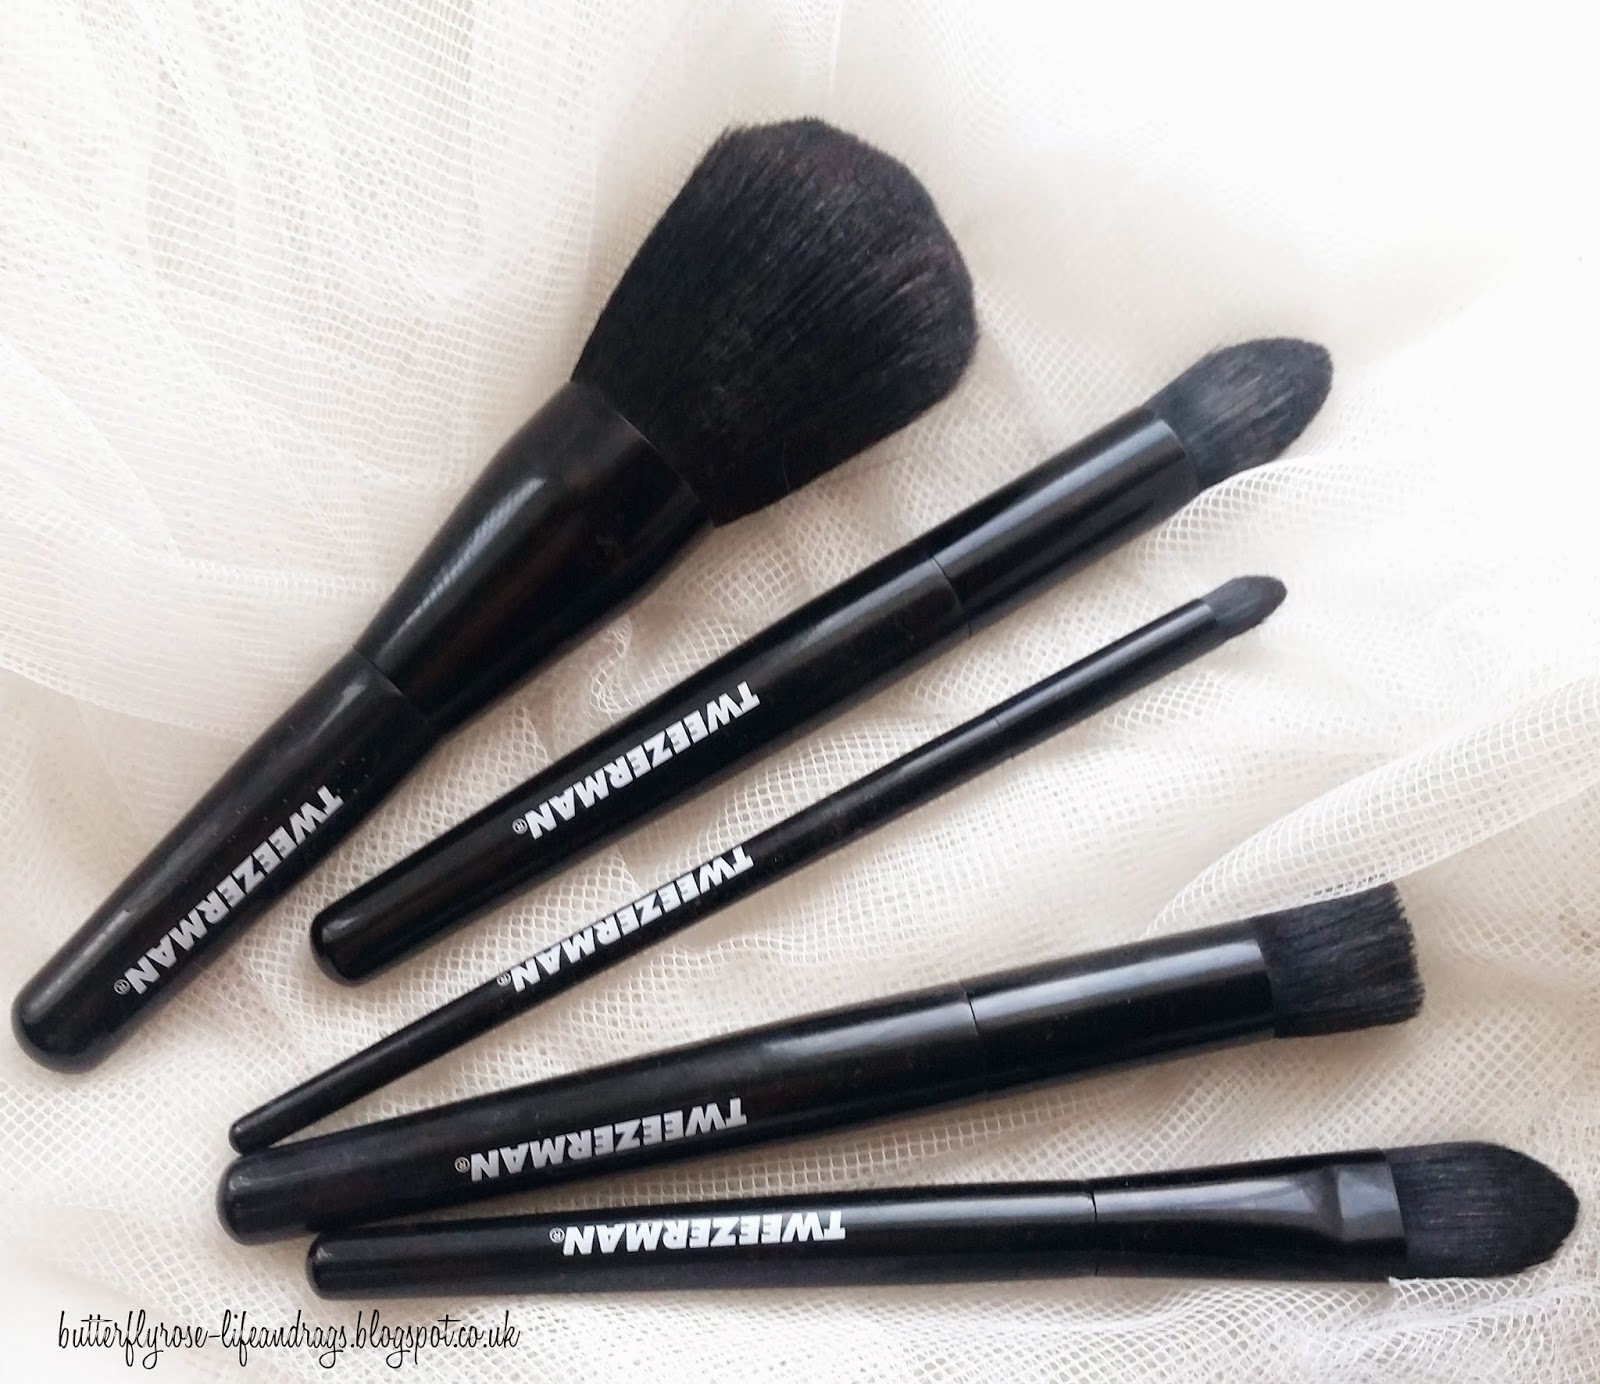 Tweezerman Makeup Brushes